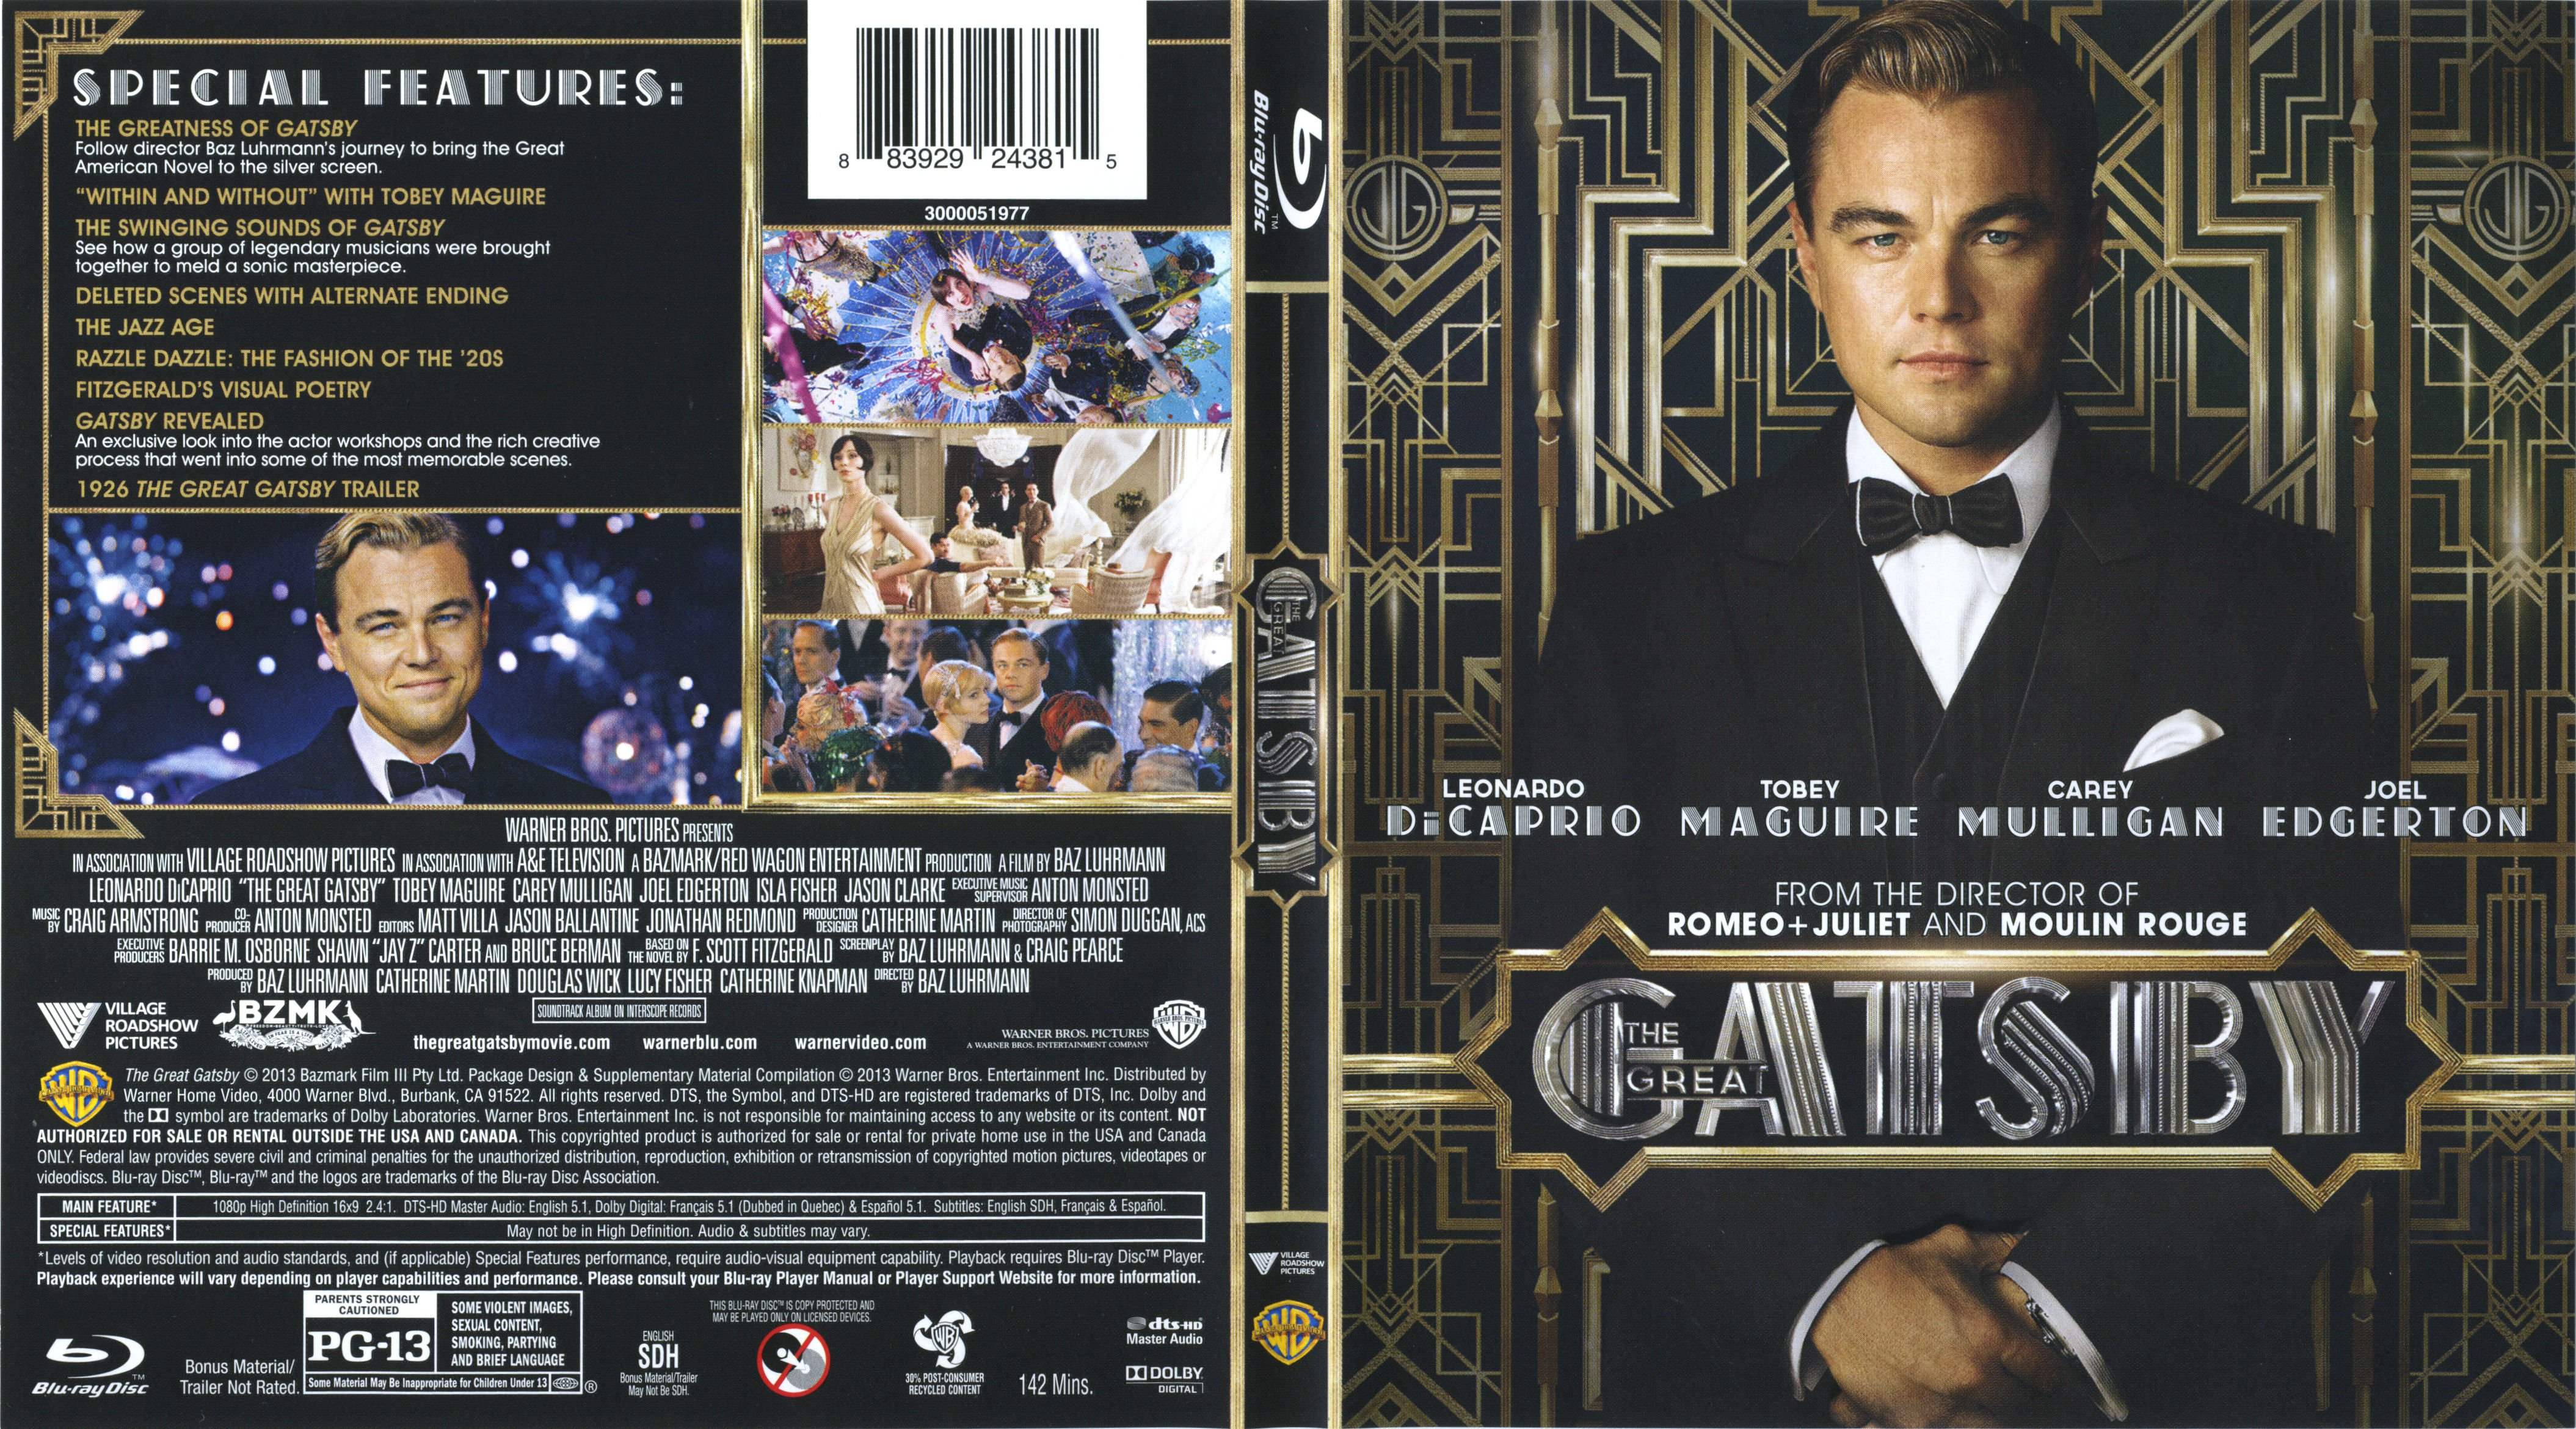 illusions within the great gatsby American illusions in the great gatsby the american dream every american has his or her own ideals and preferences, but all share more or gatsby is dreaming the american dream that anything is possible, but the tragic flaw within him is that he is living in the past and cannot see the destructive.